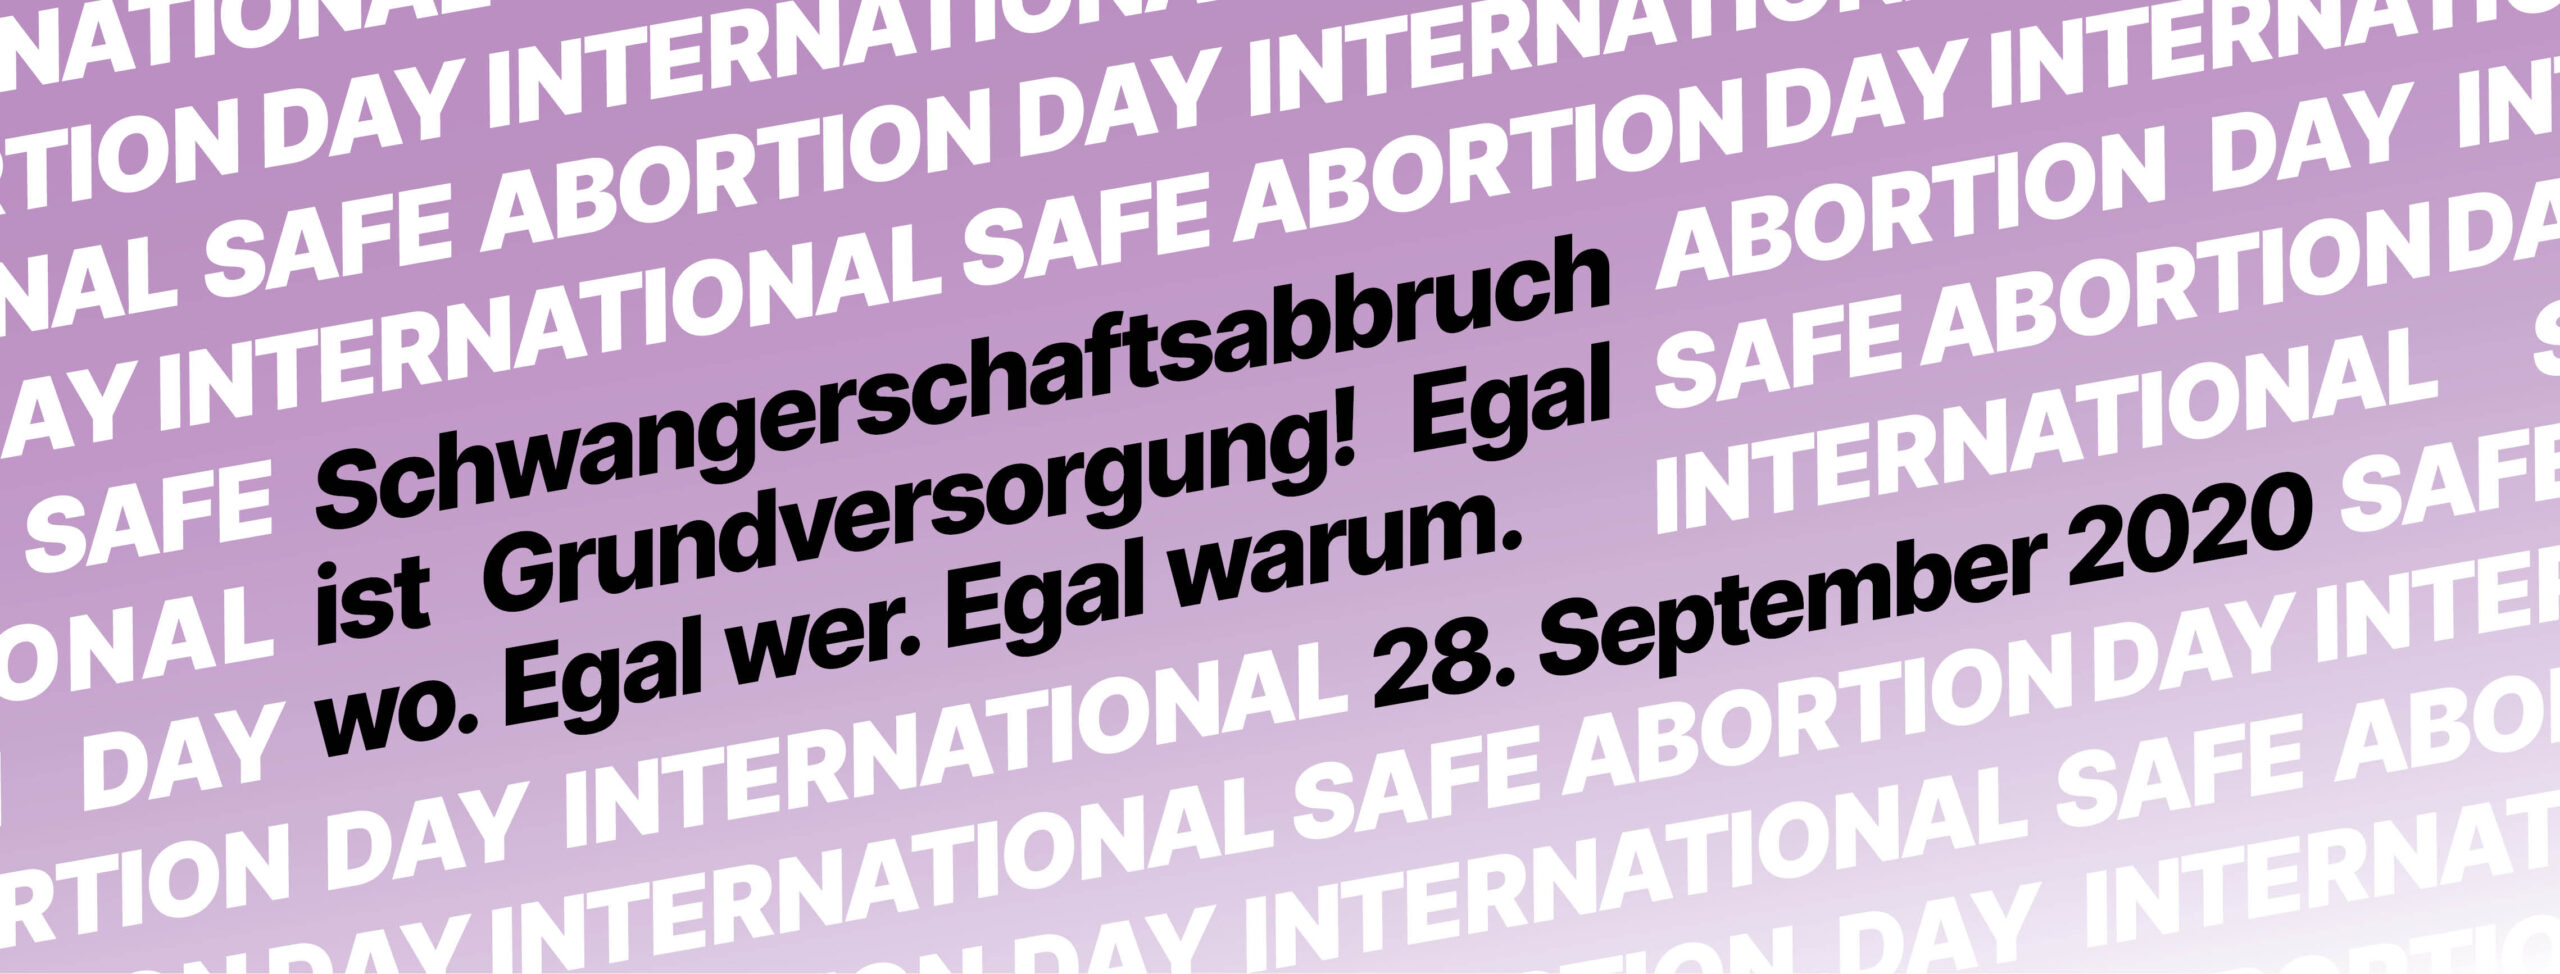 Stellungnahme: Safe Abortion Day